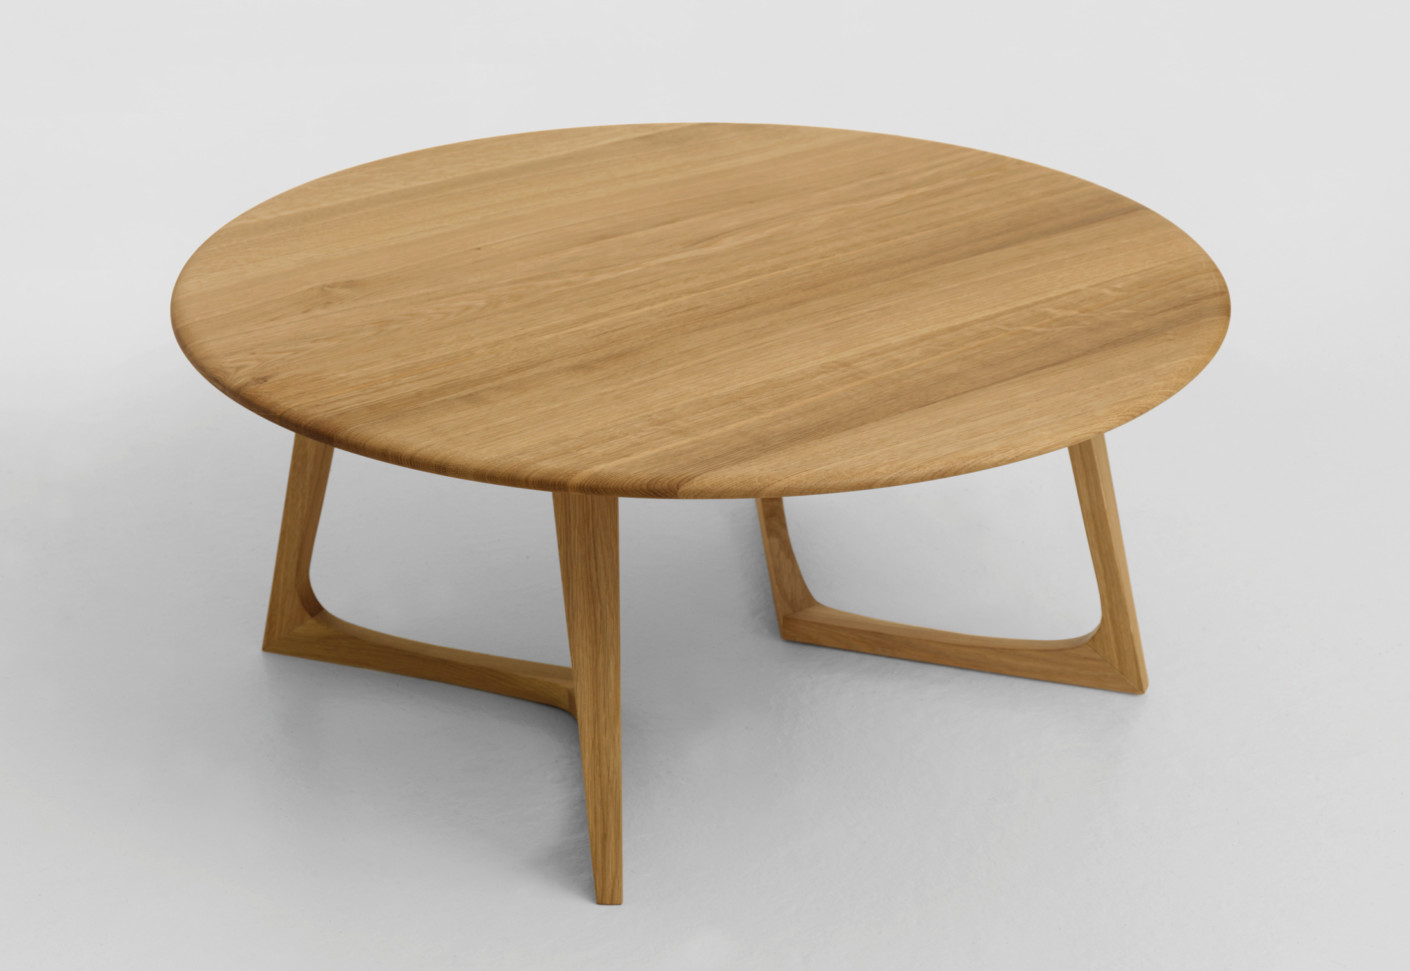 Id 05 2255 10121 Categories Home Furniture Tables Coffee Tables